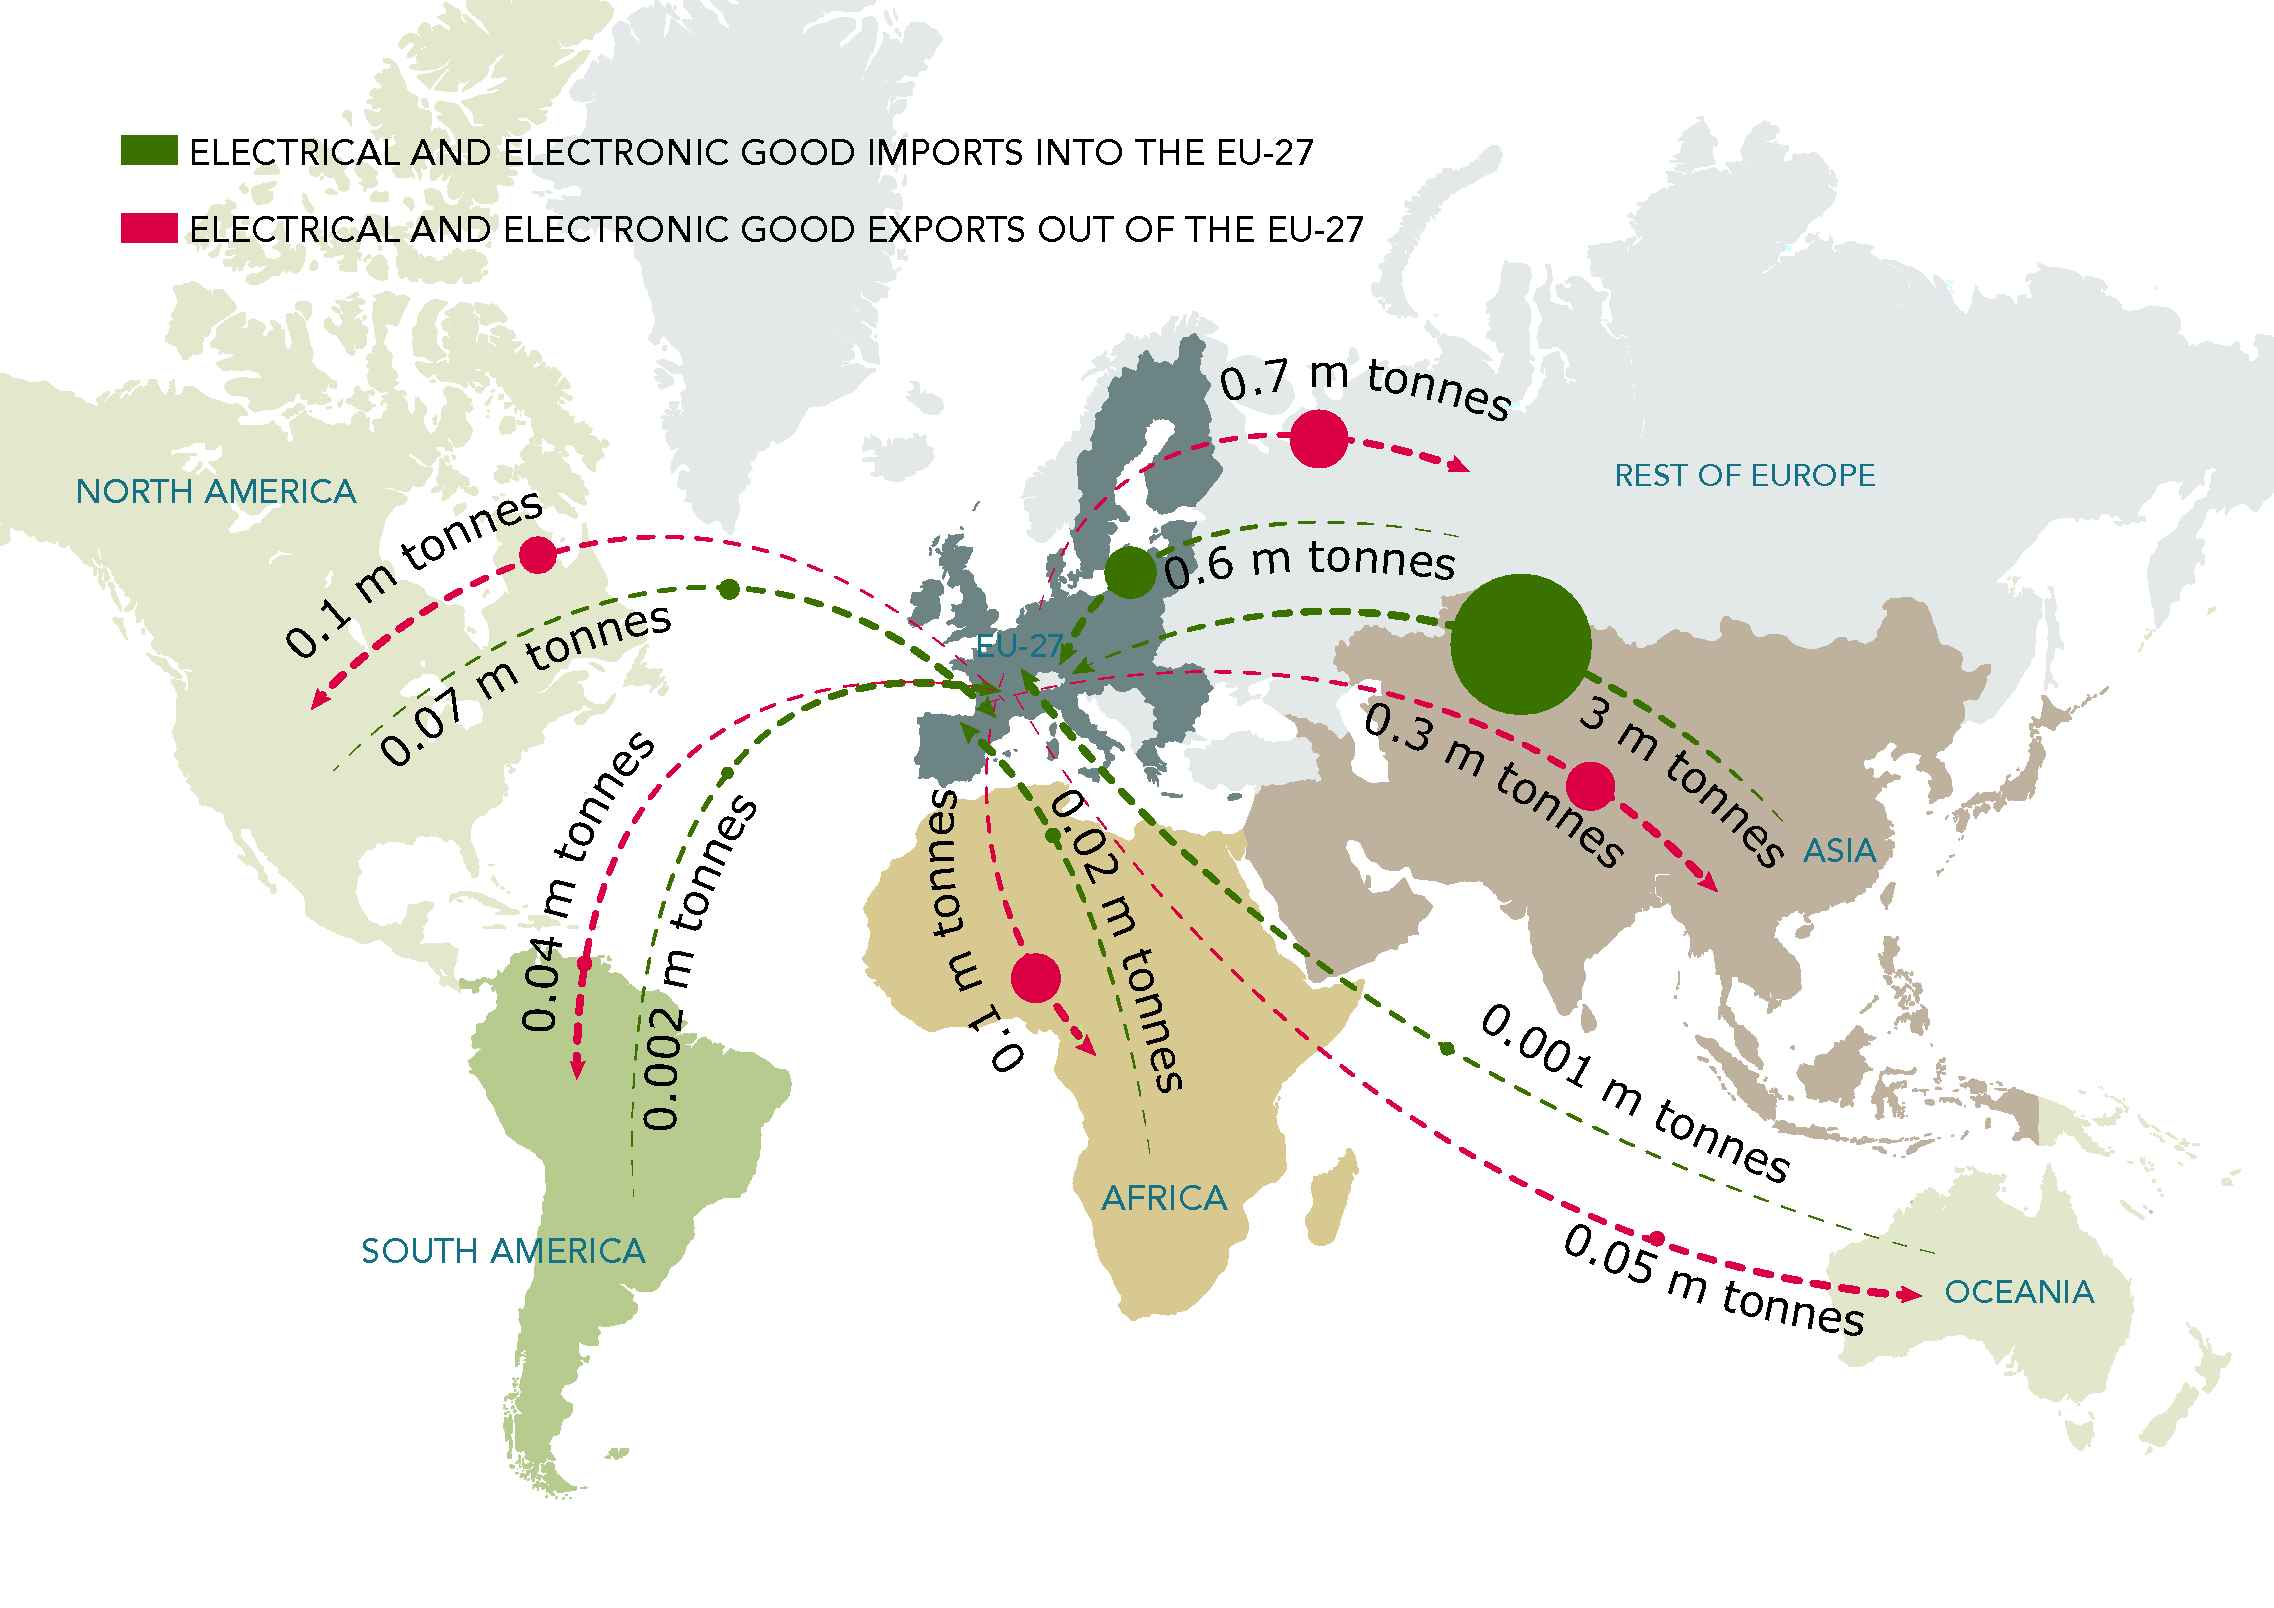 Imports and exports of electrical and electronic goods